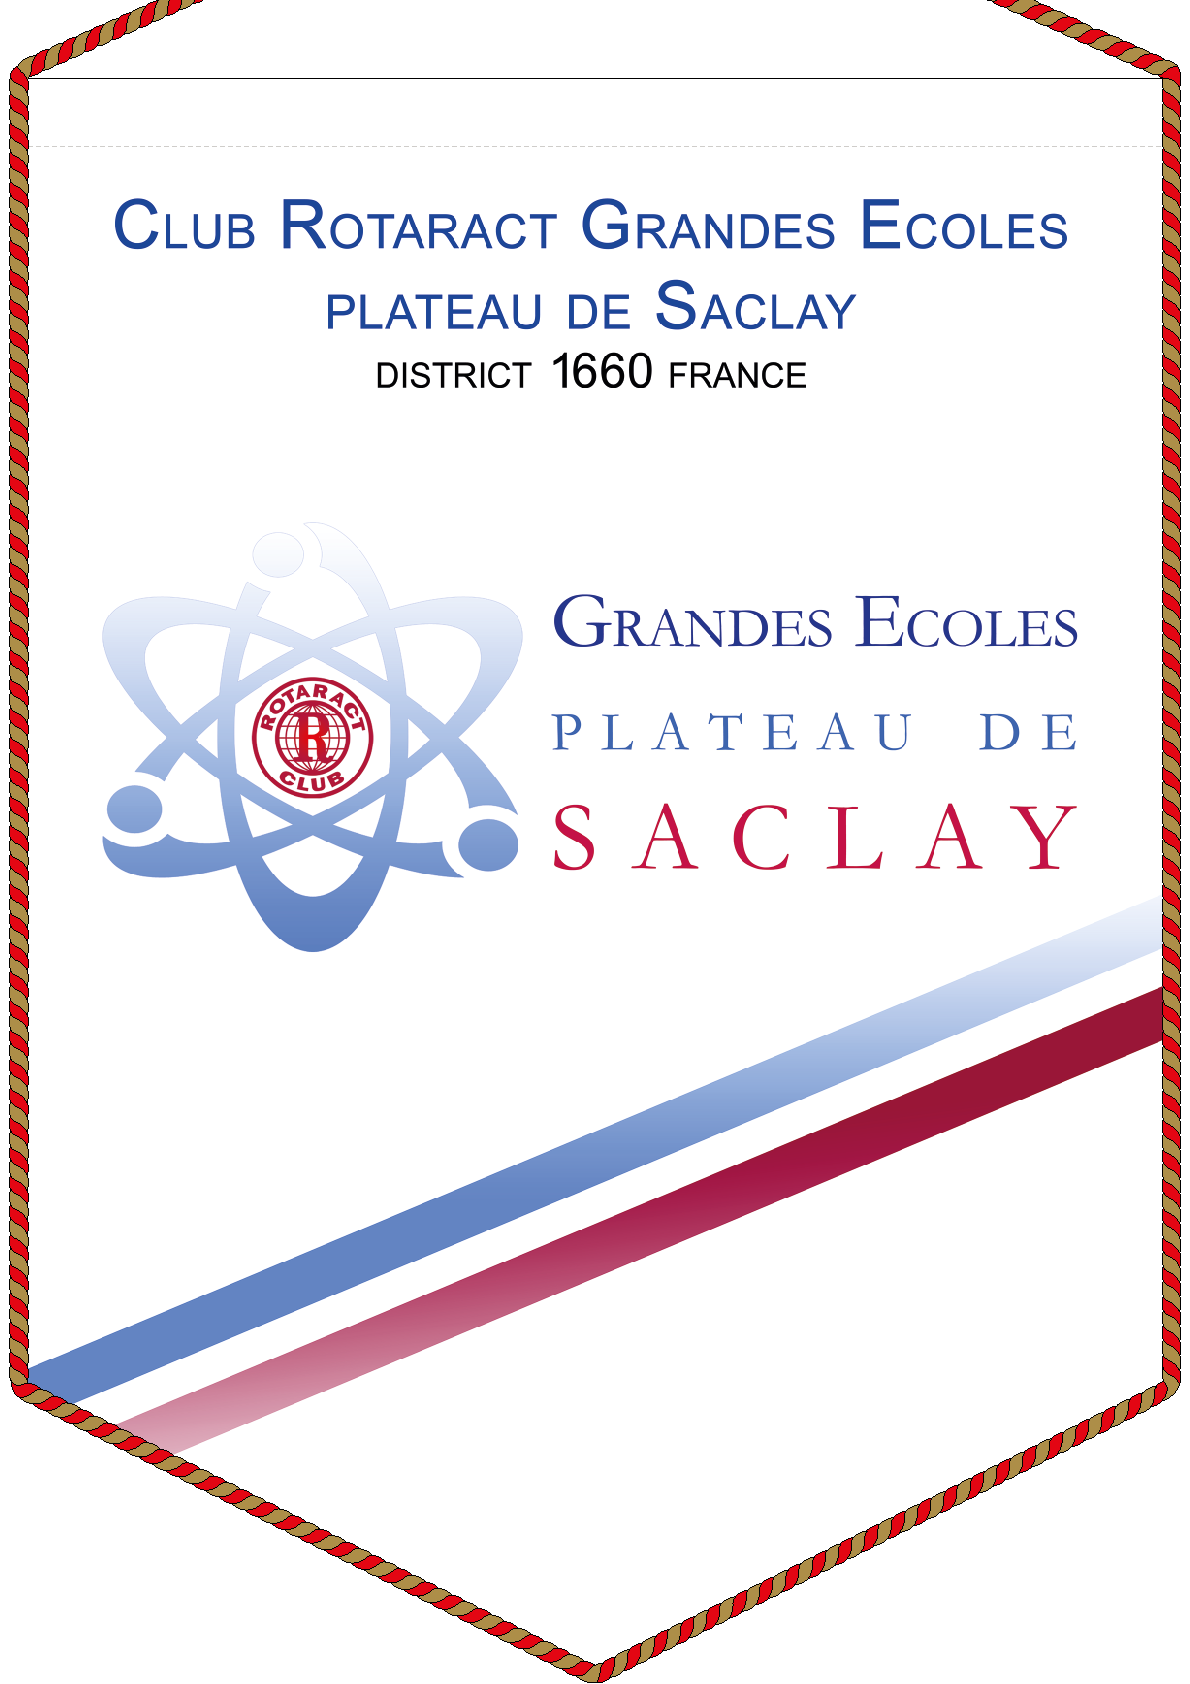 FANION ROTARACT CLUB SARCLAY GRANDES ECOLES